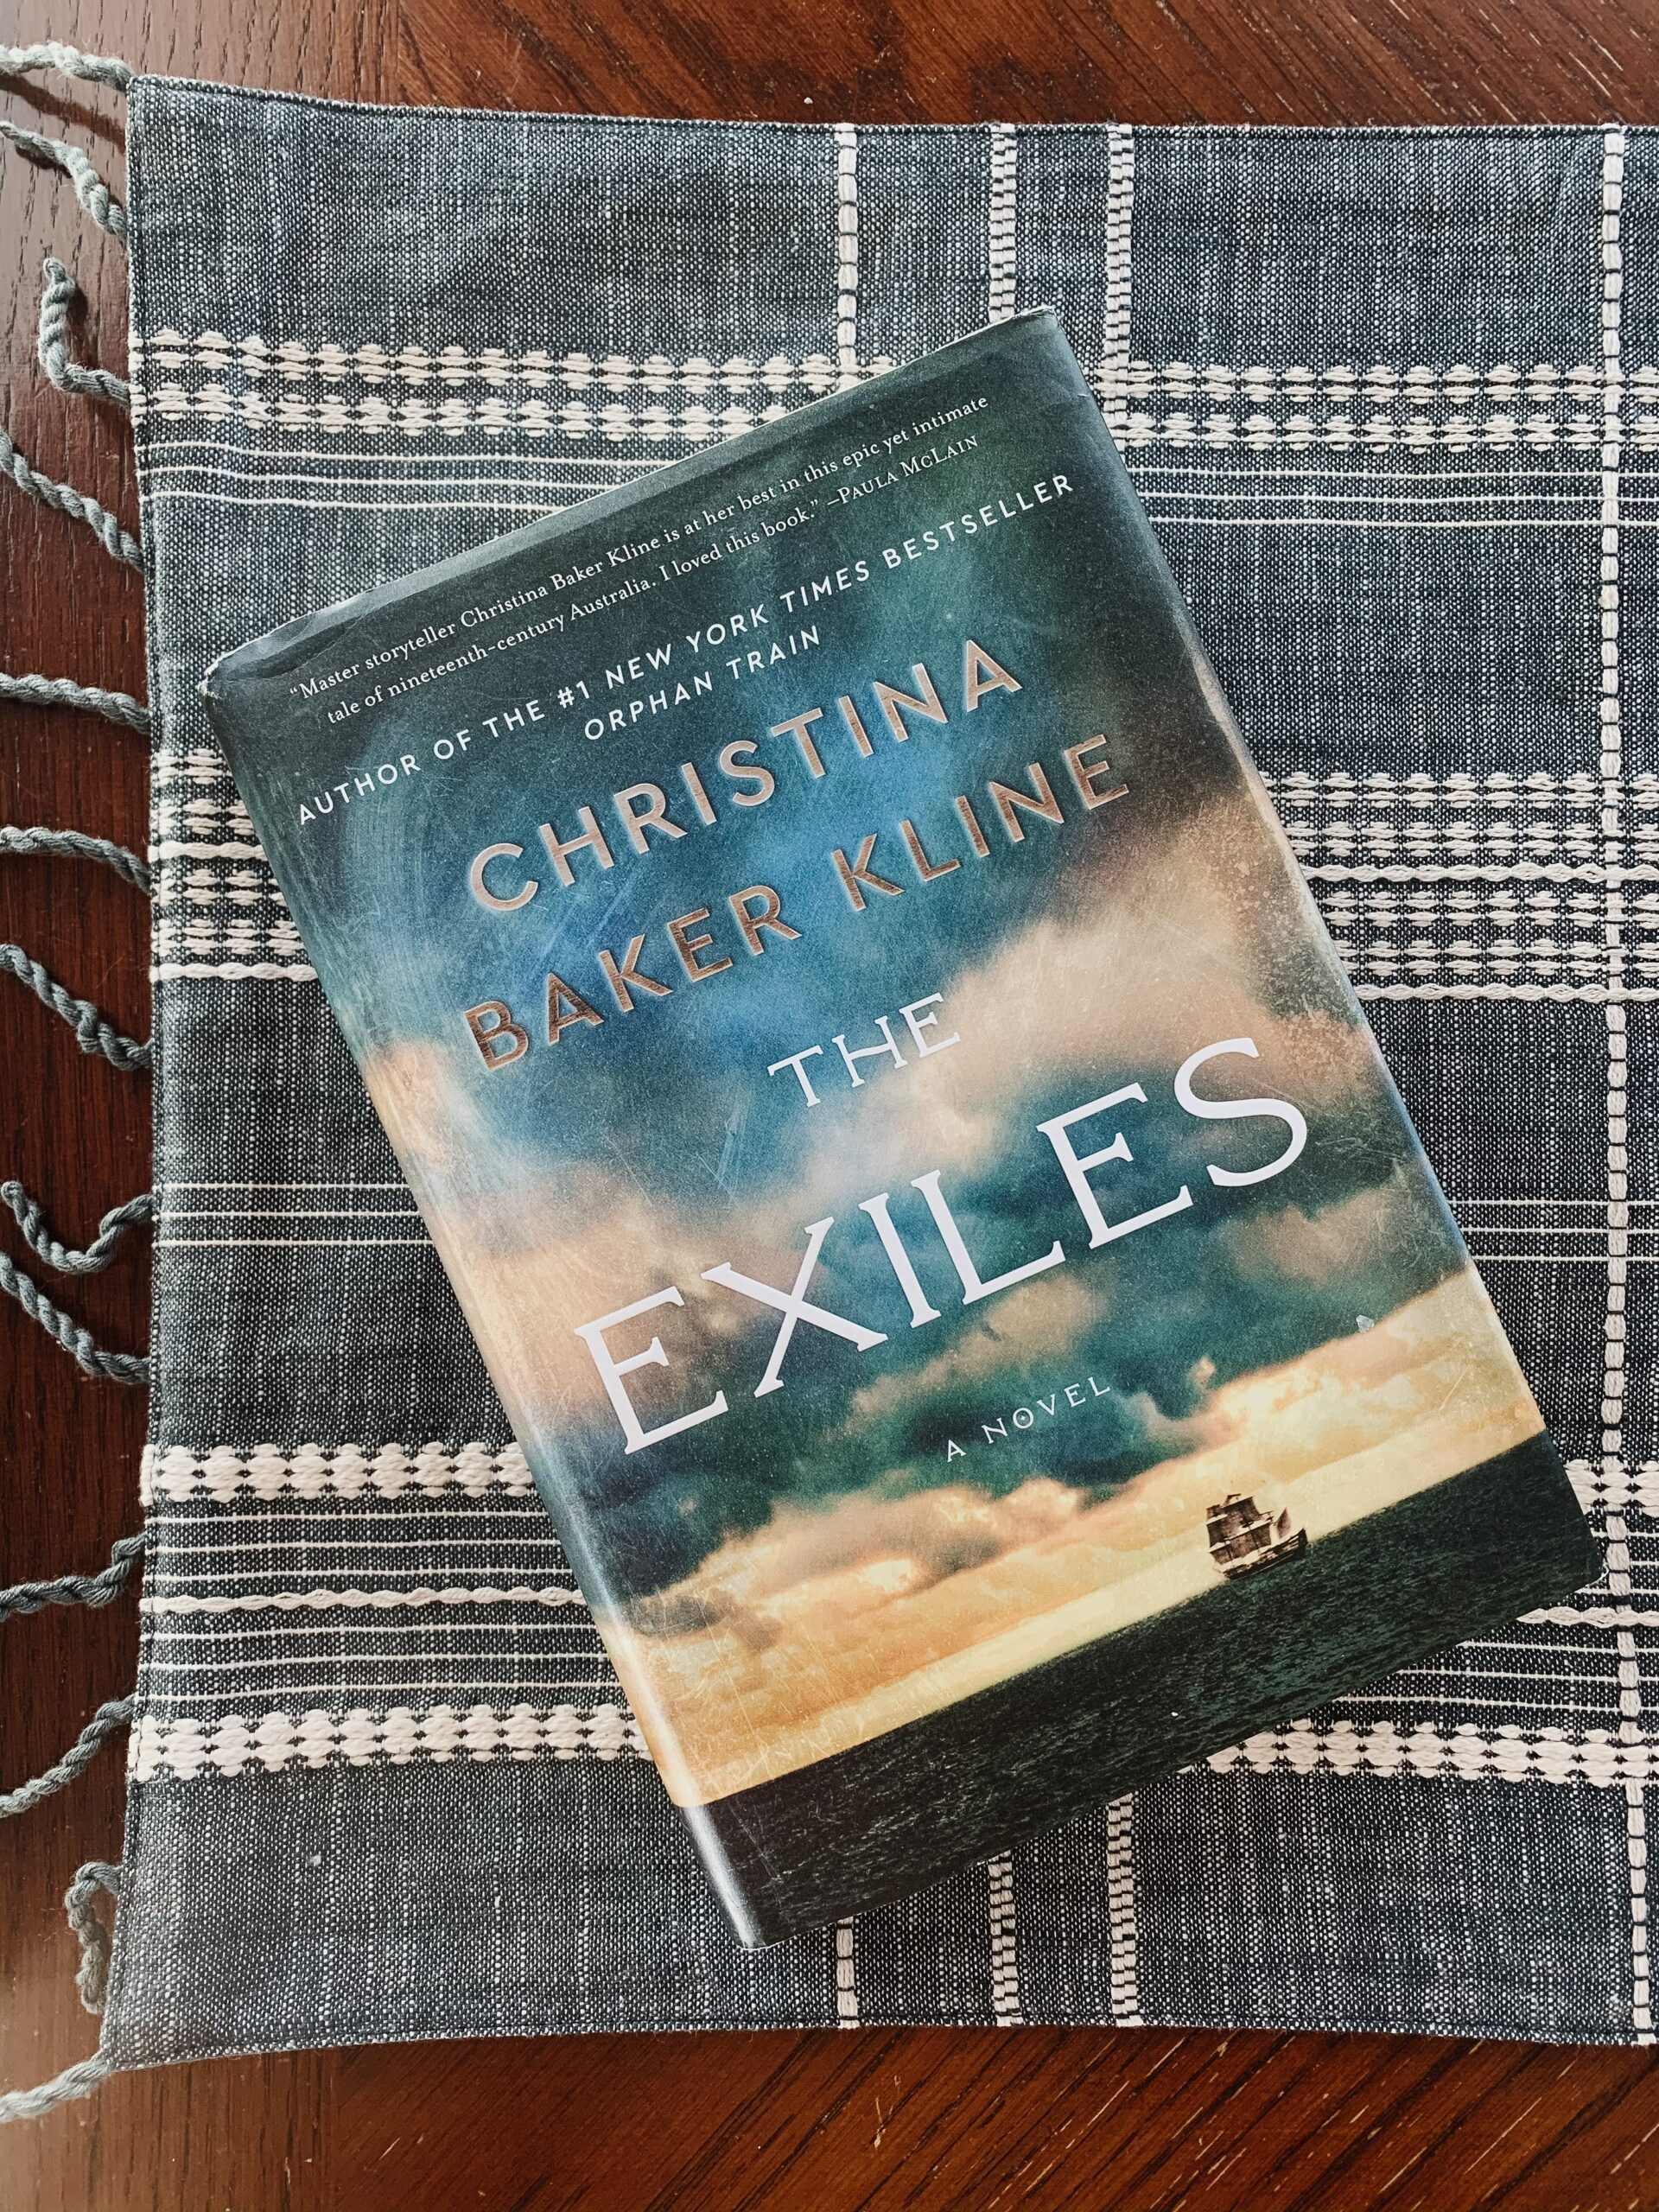 Book Review for The Exiles by Christina Baker Kline